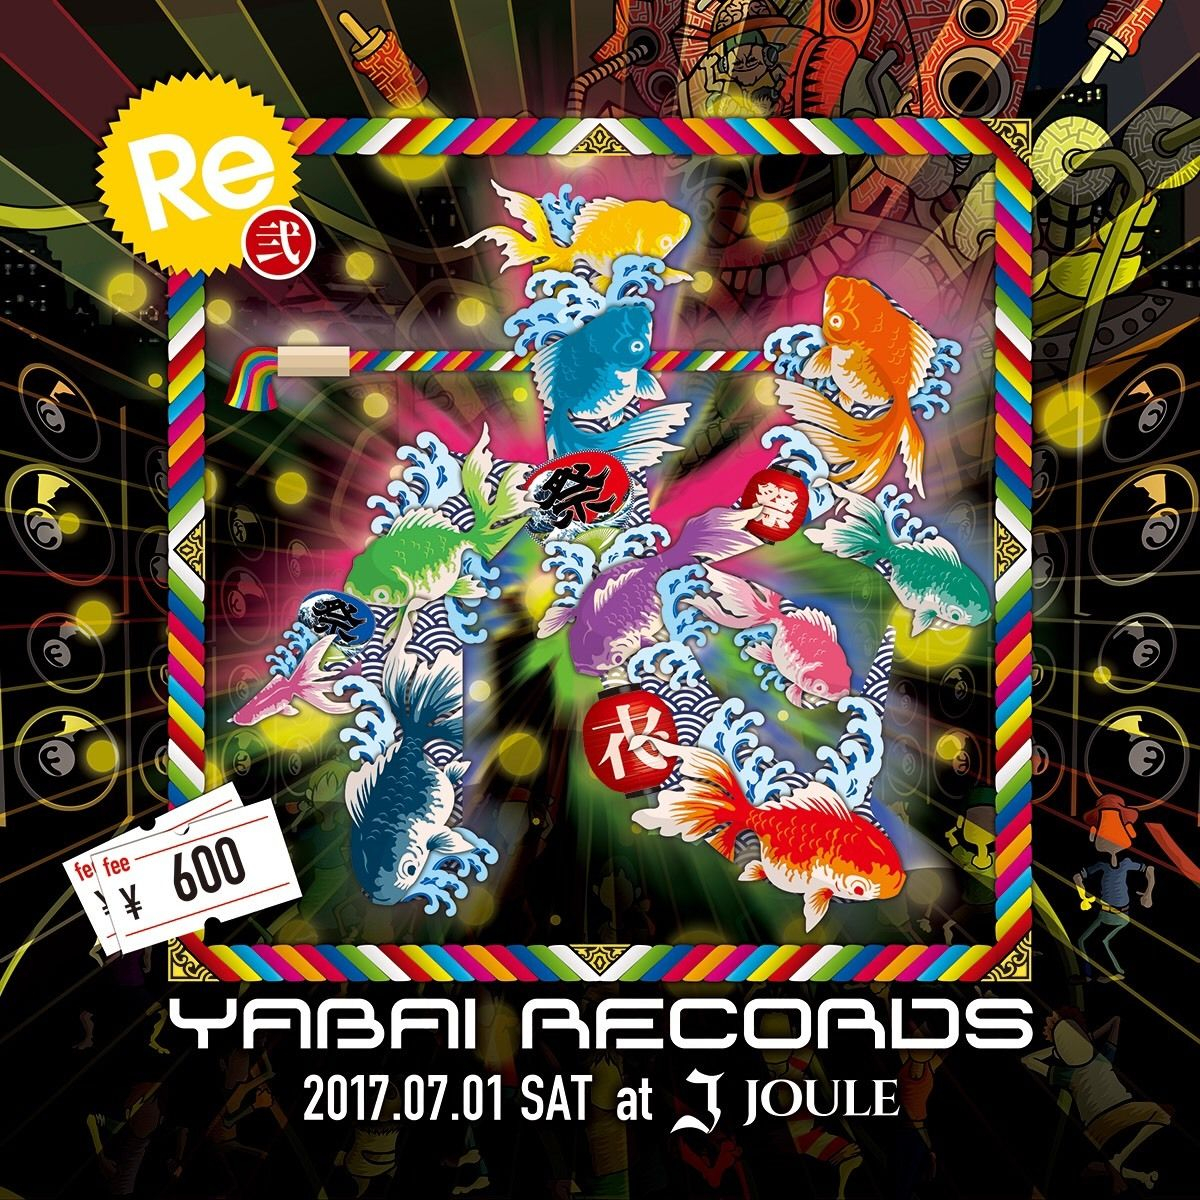 Re:YABAI Vol.2